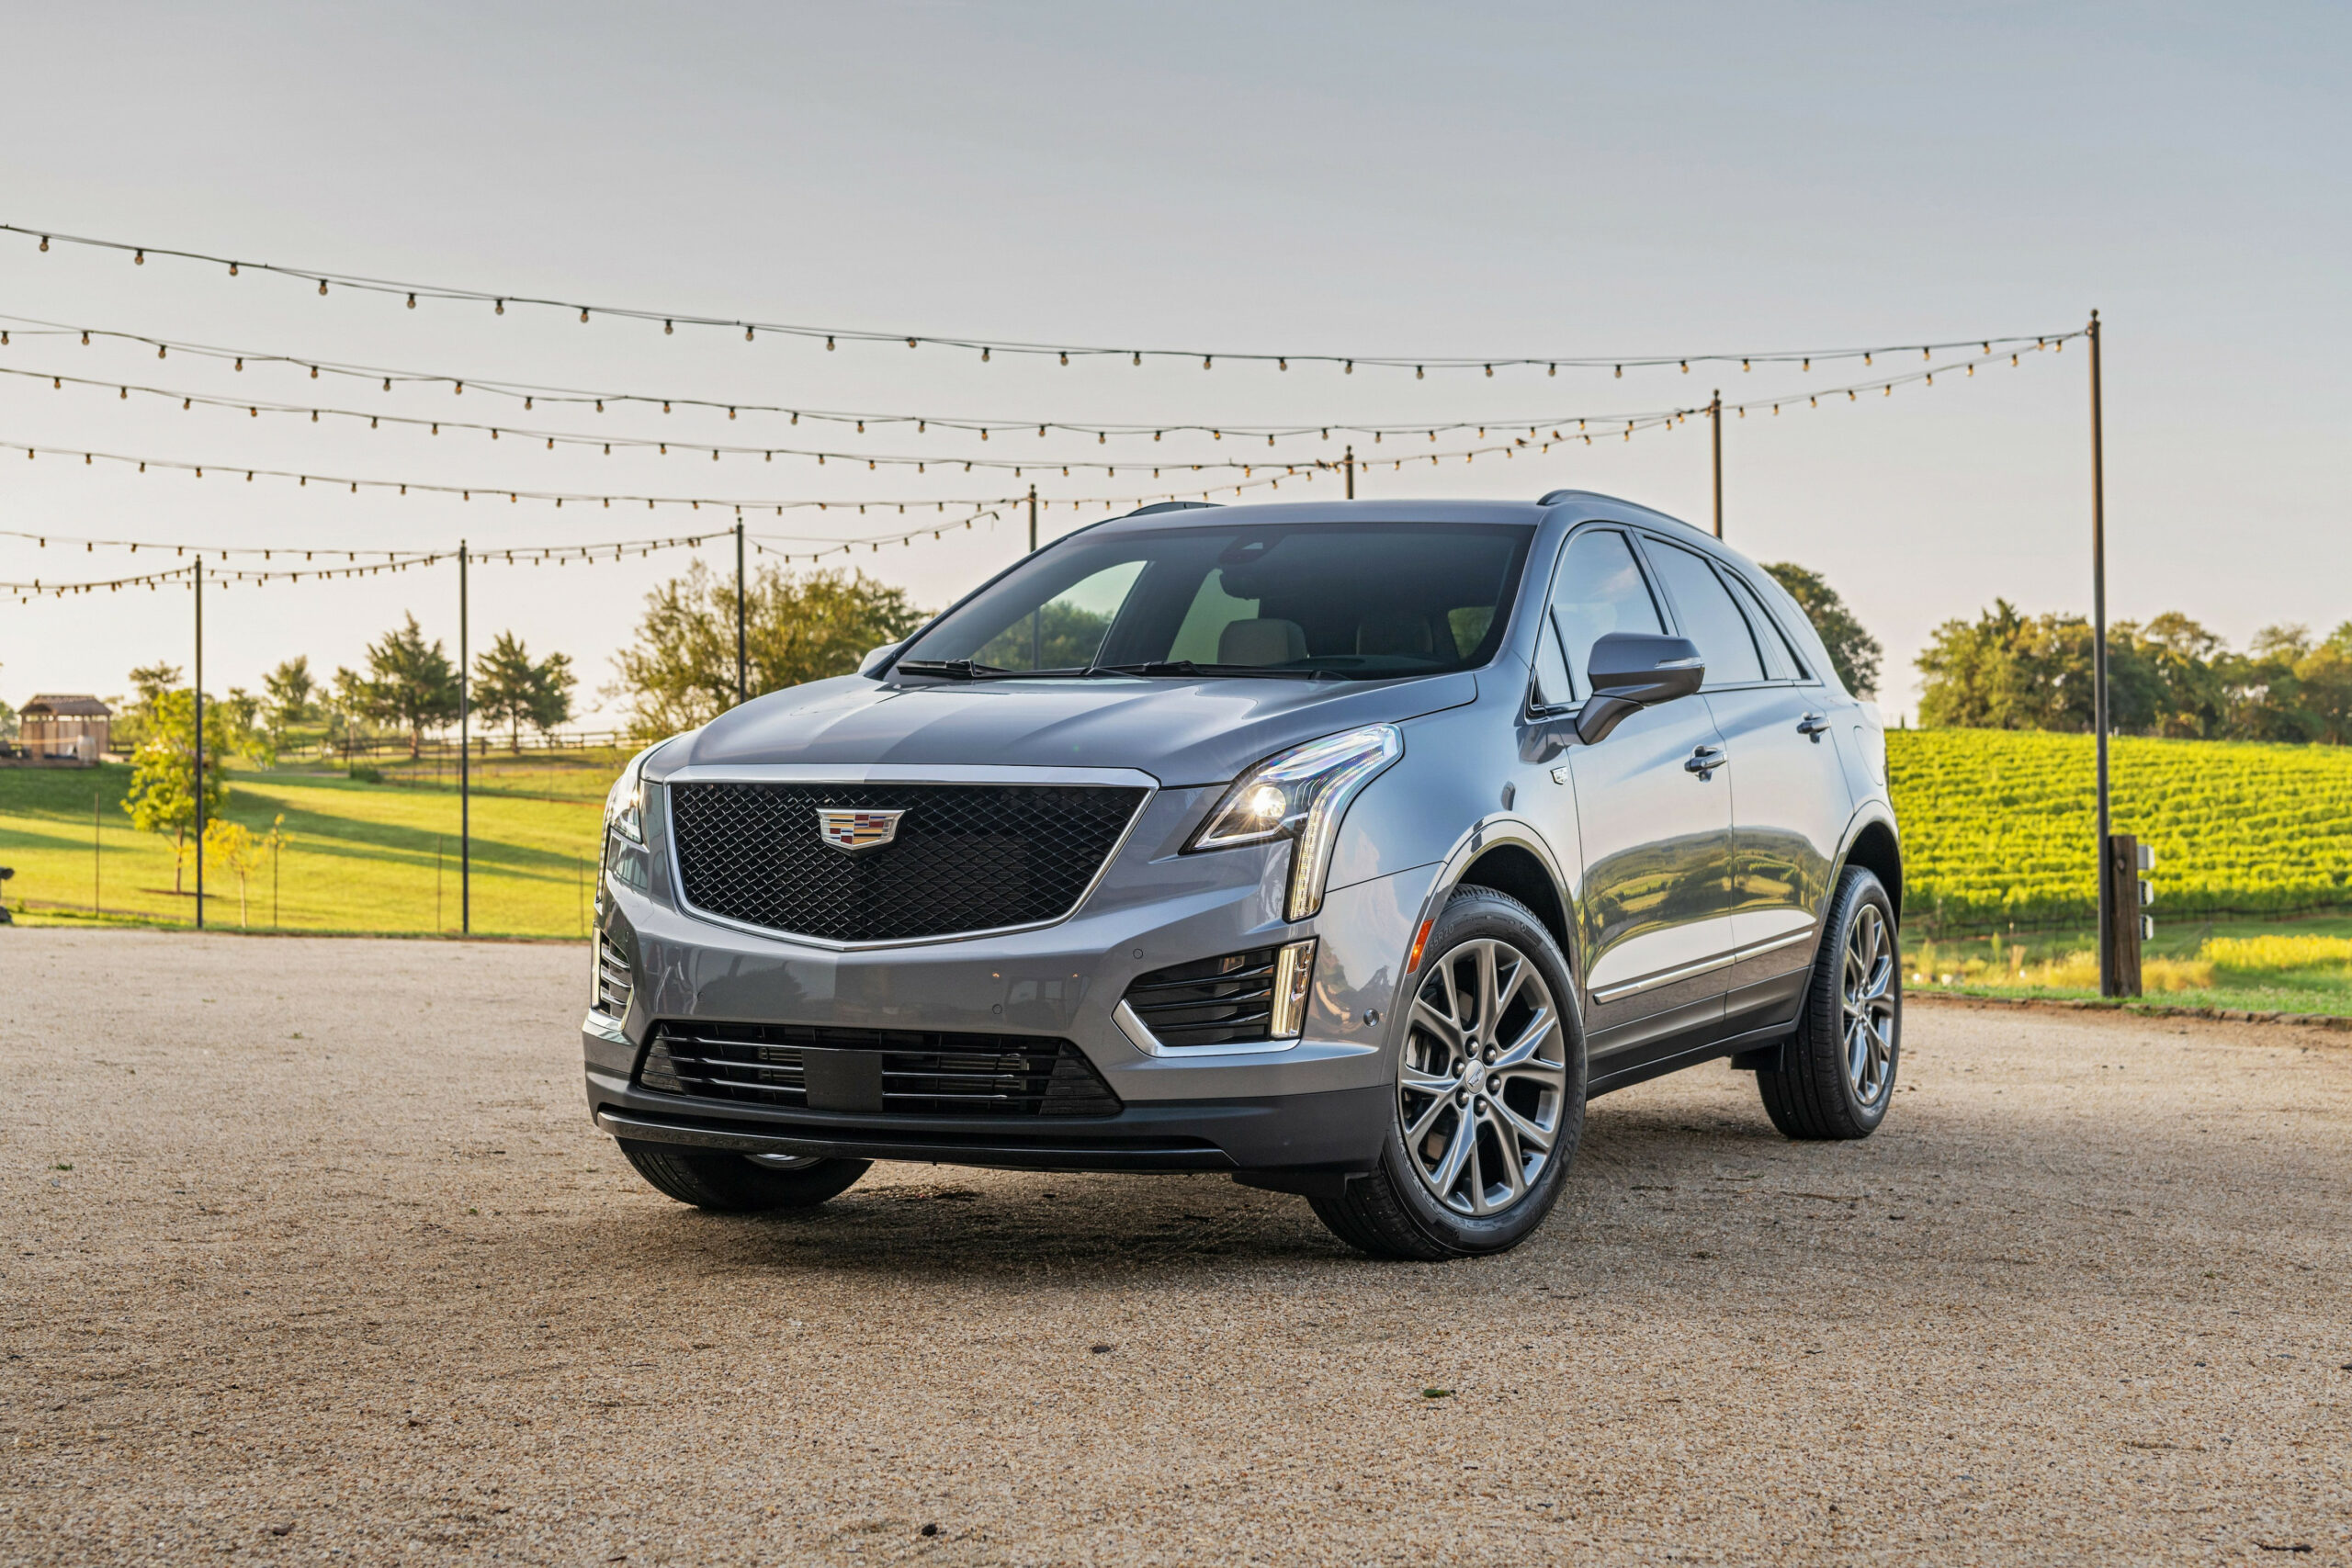 11 Cadillac XT11 Review, Pricing, and Specs - cadillac xt5 review 2020